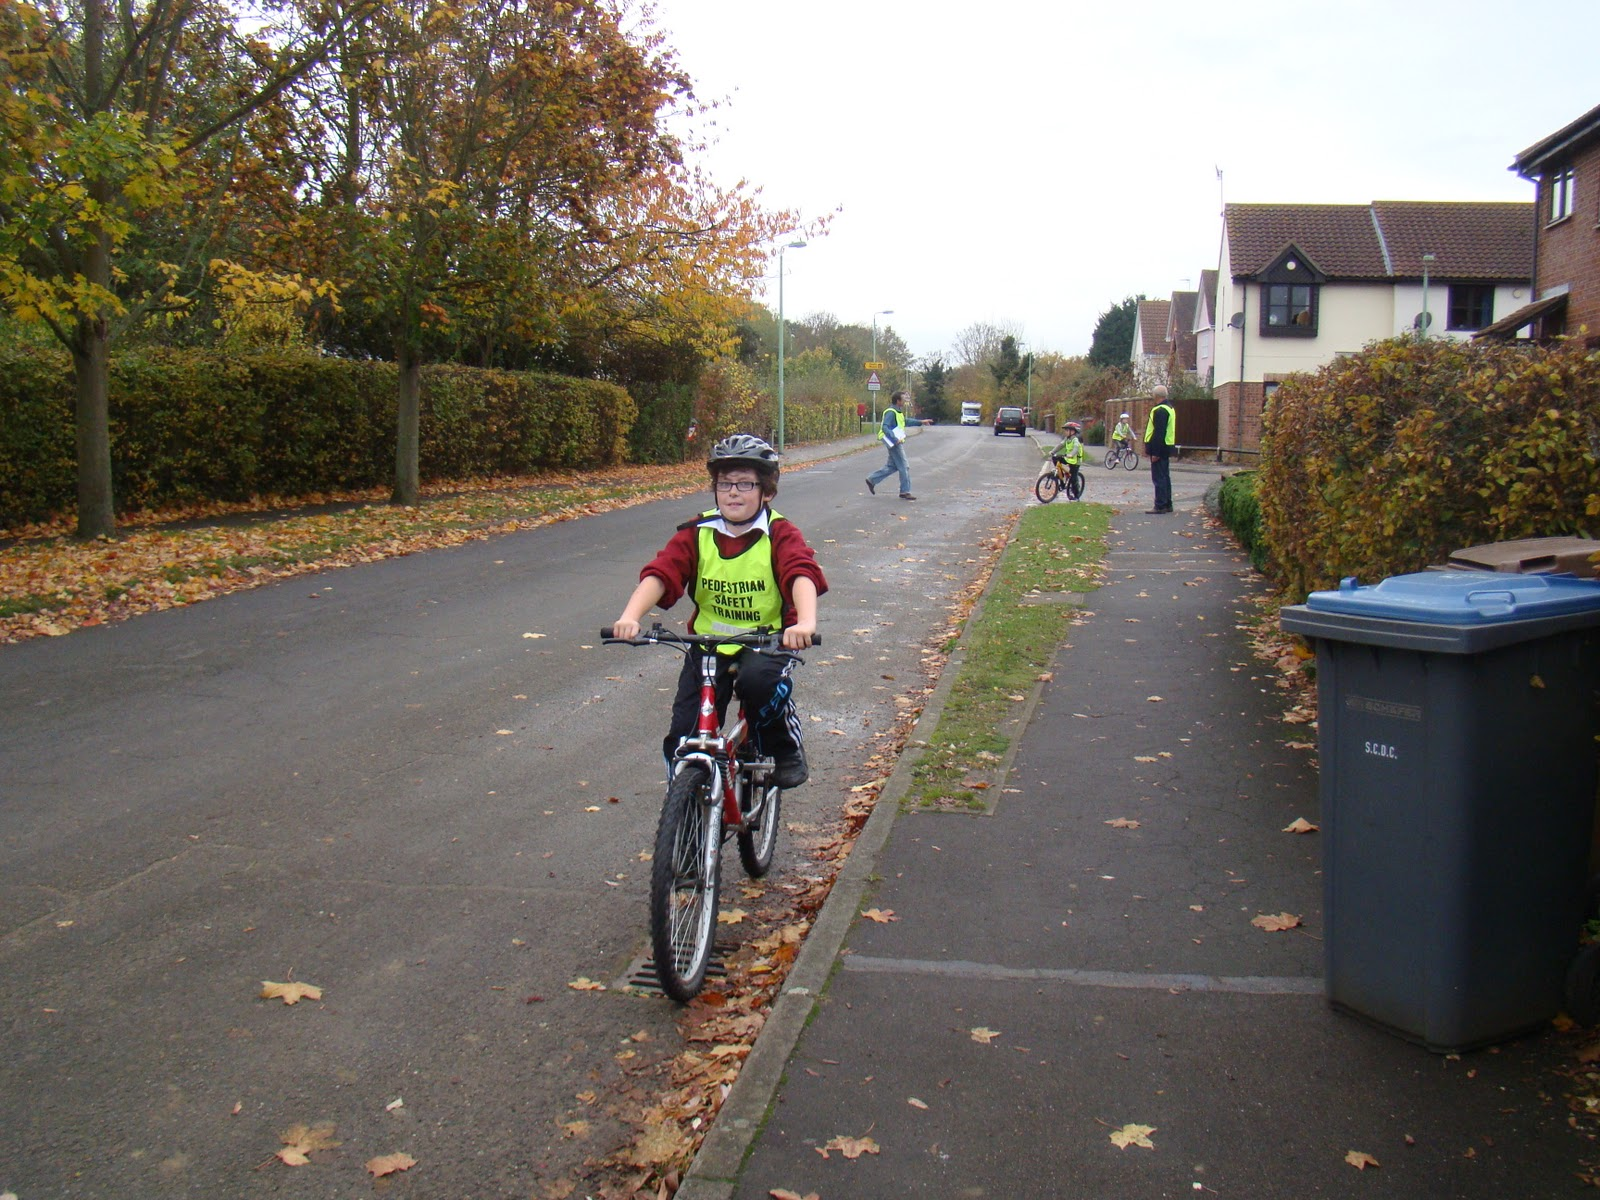 Cycle proficiency test for adults